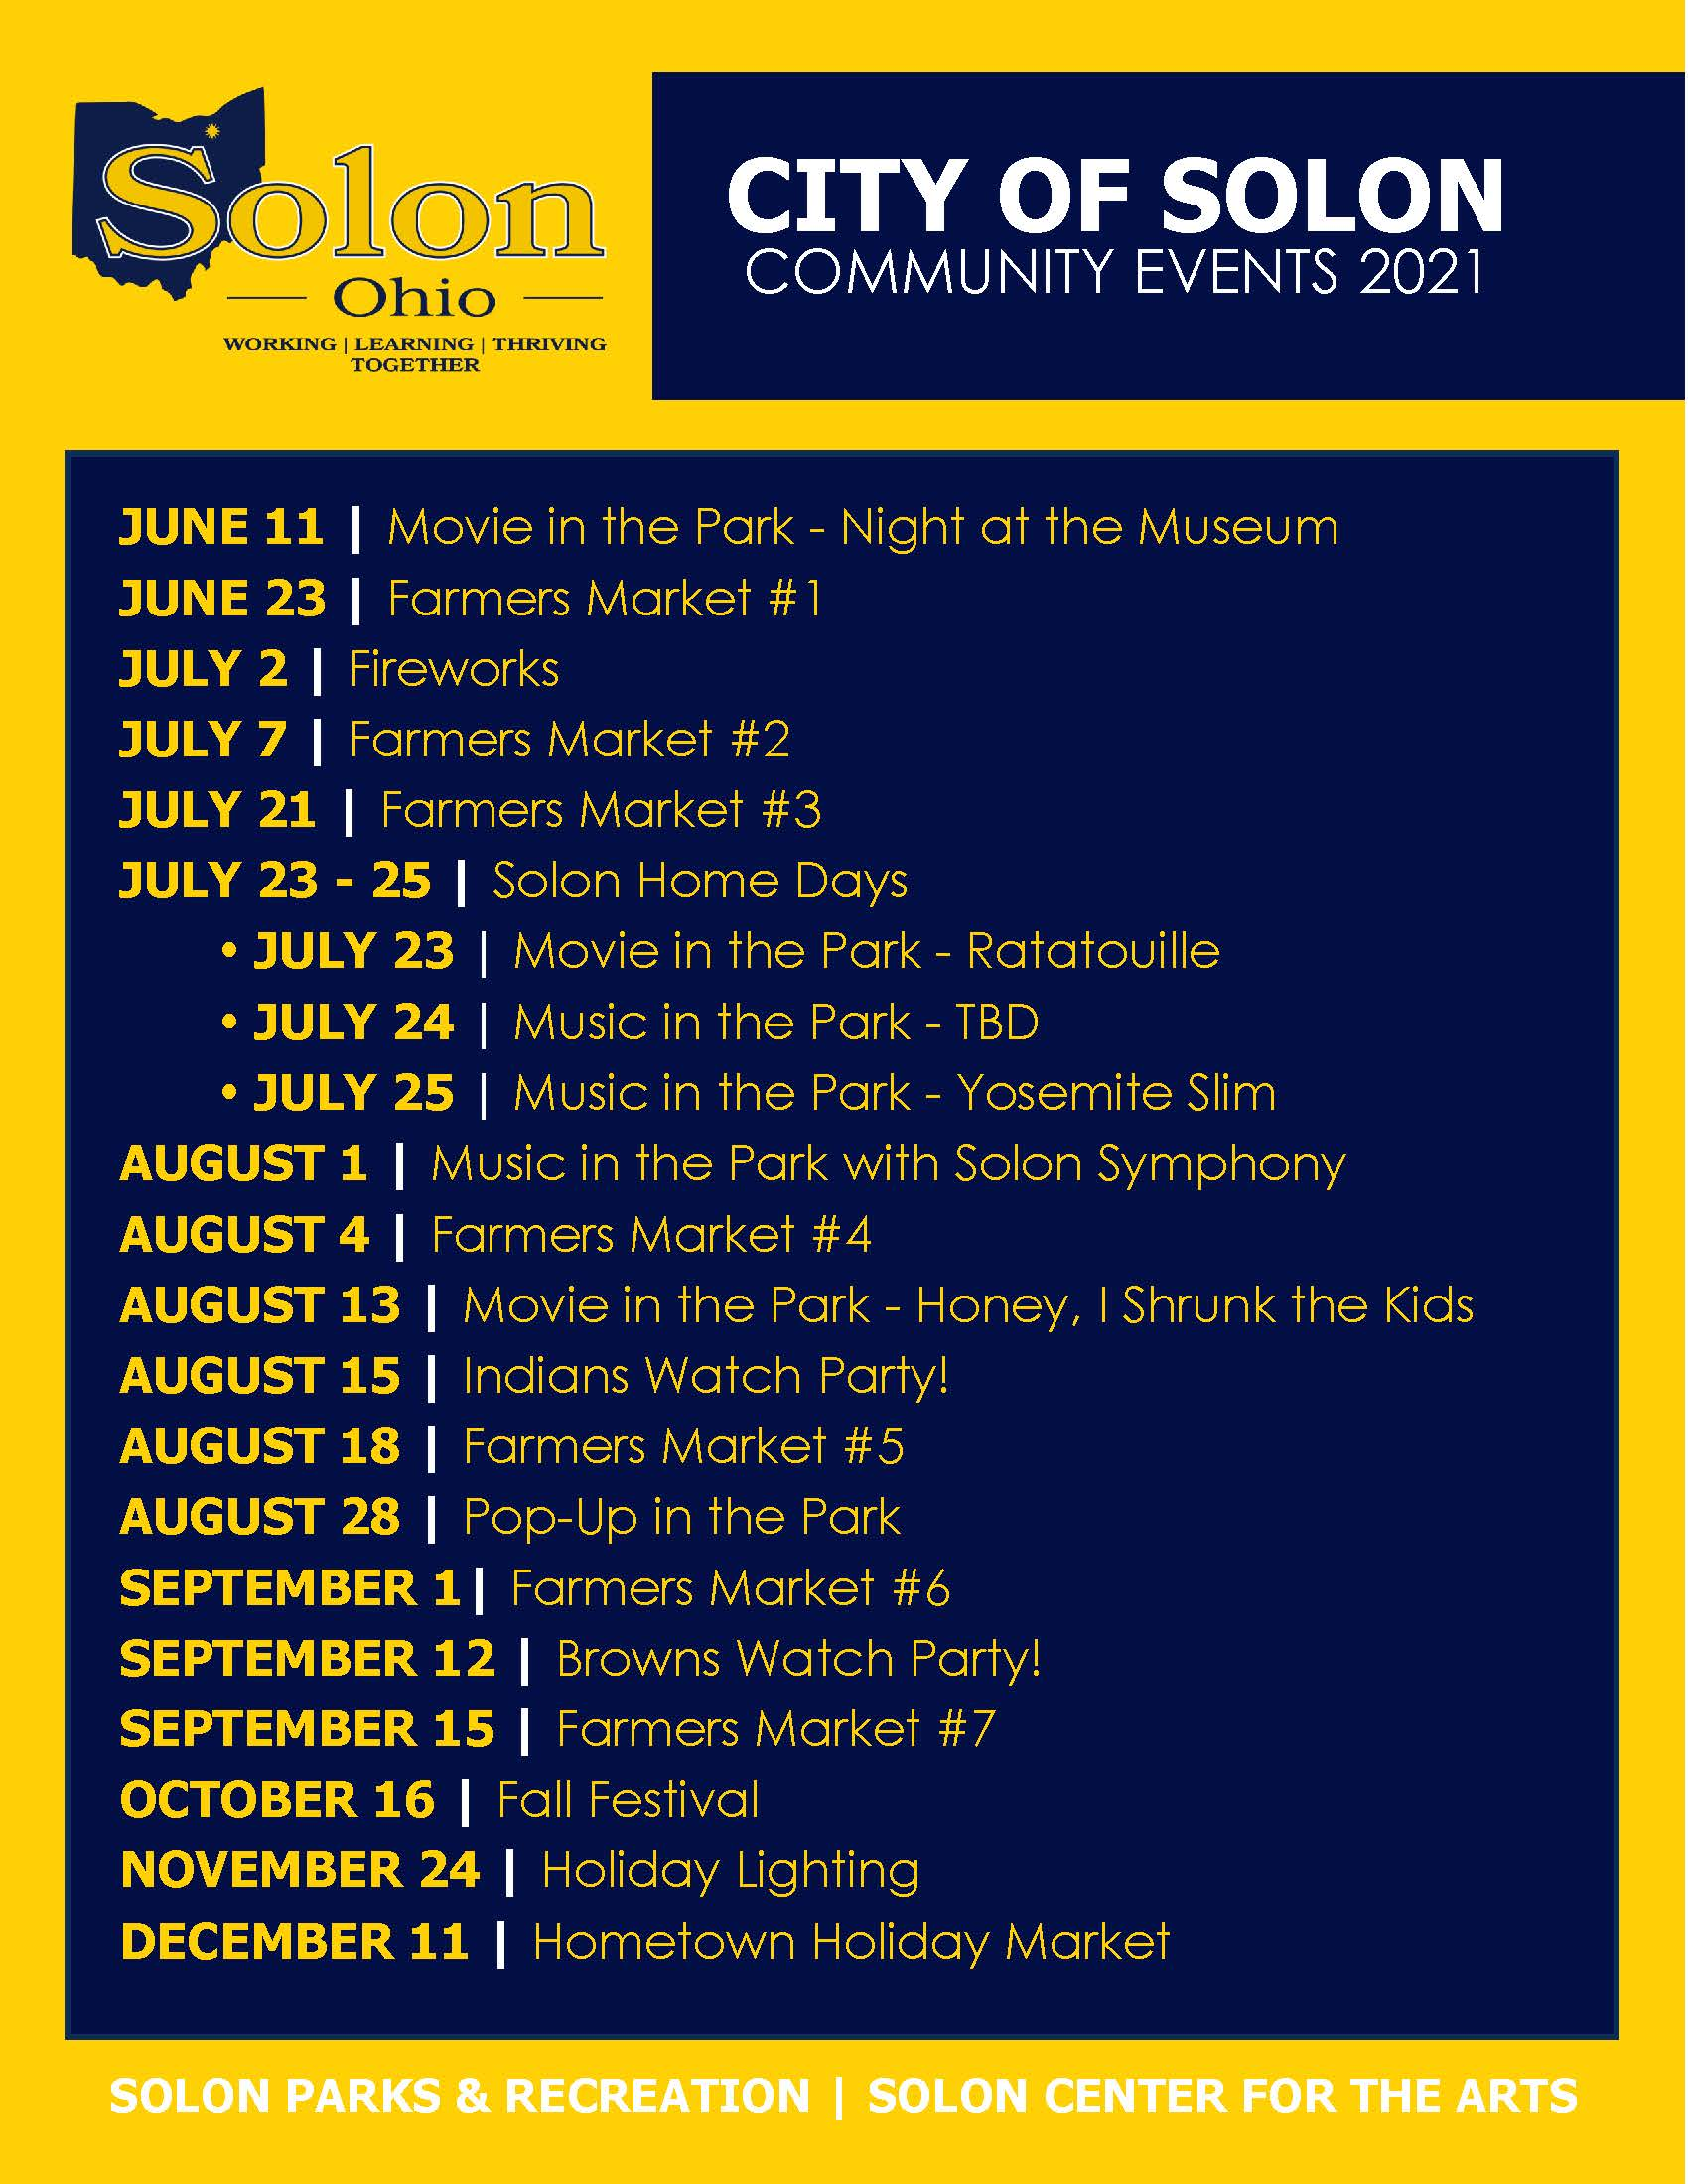 2021 Community Events